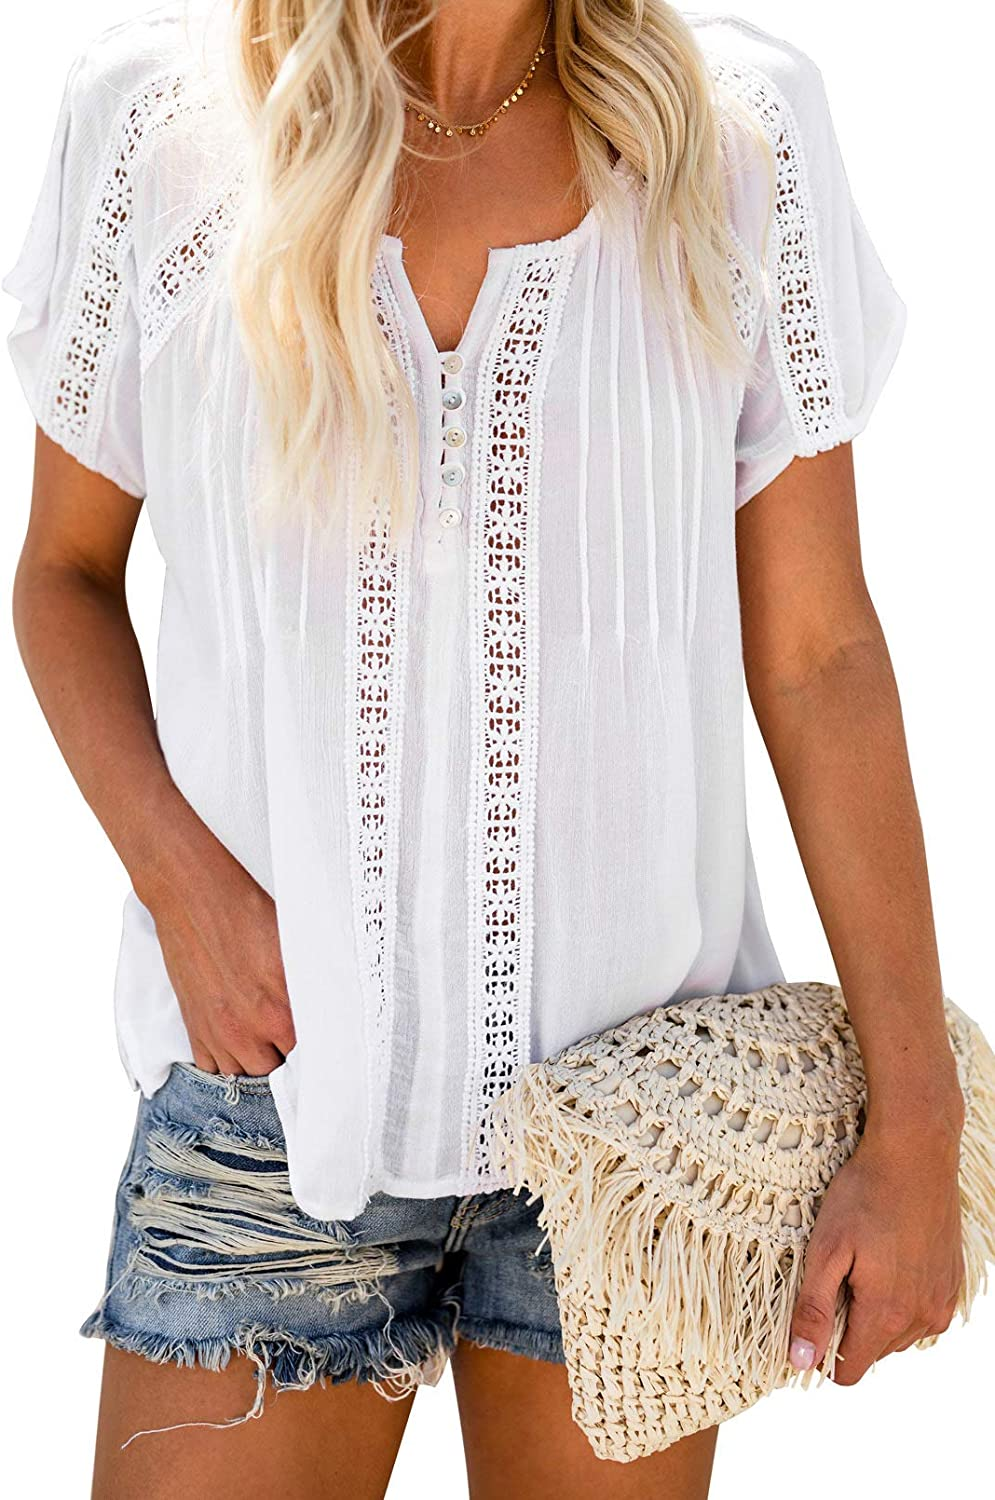 Paitluc Womens Lace Crochet Eyelet Button Down Womens Summer Tops and Blouses S-XXL